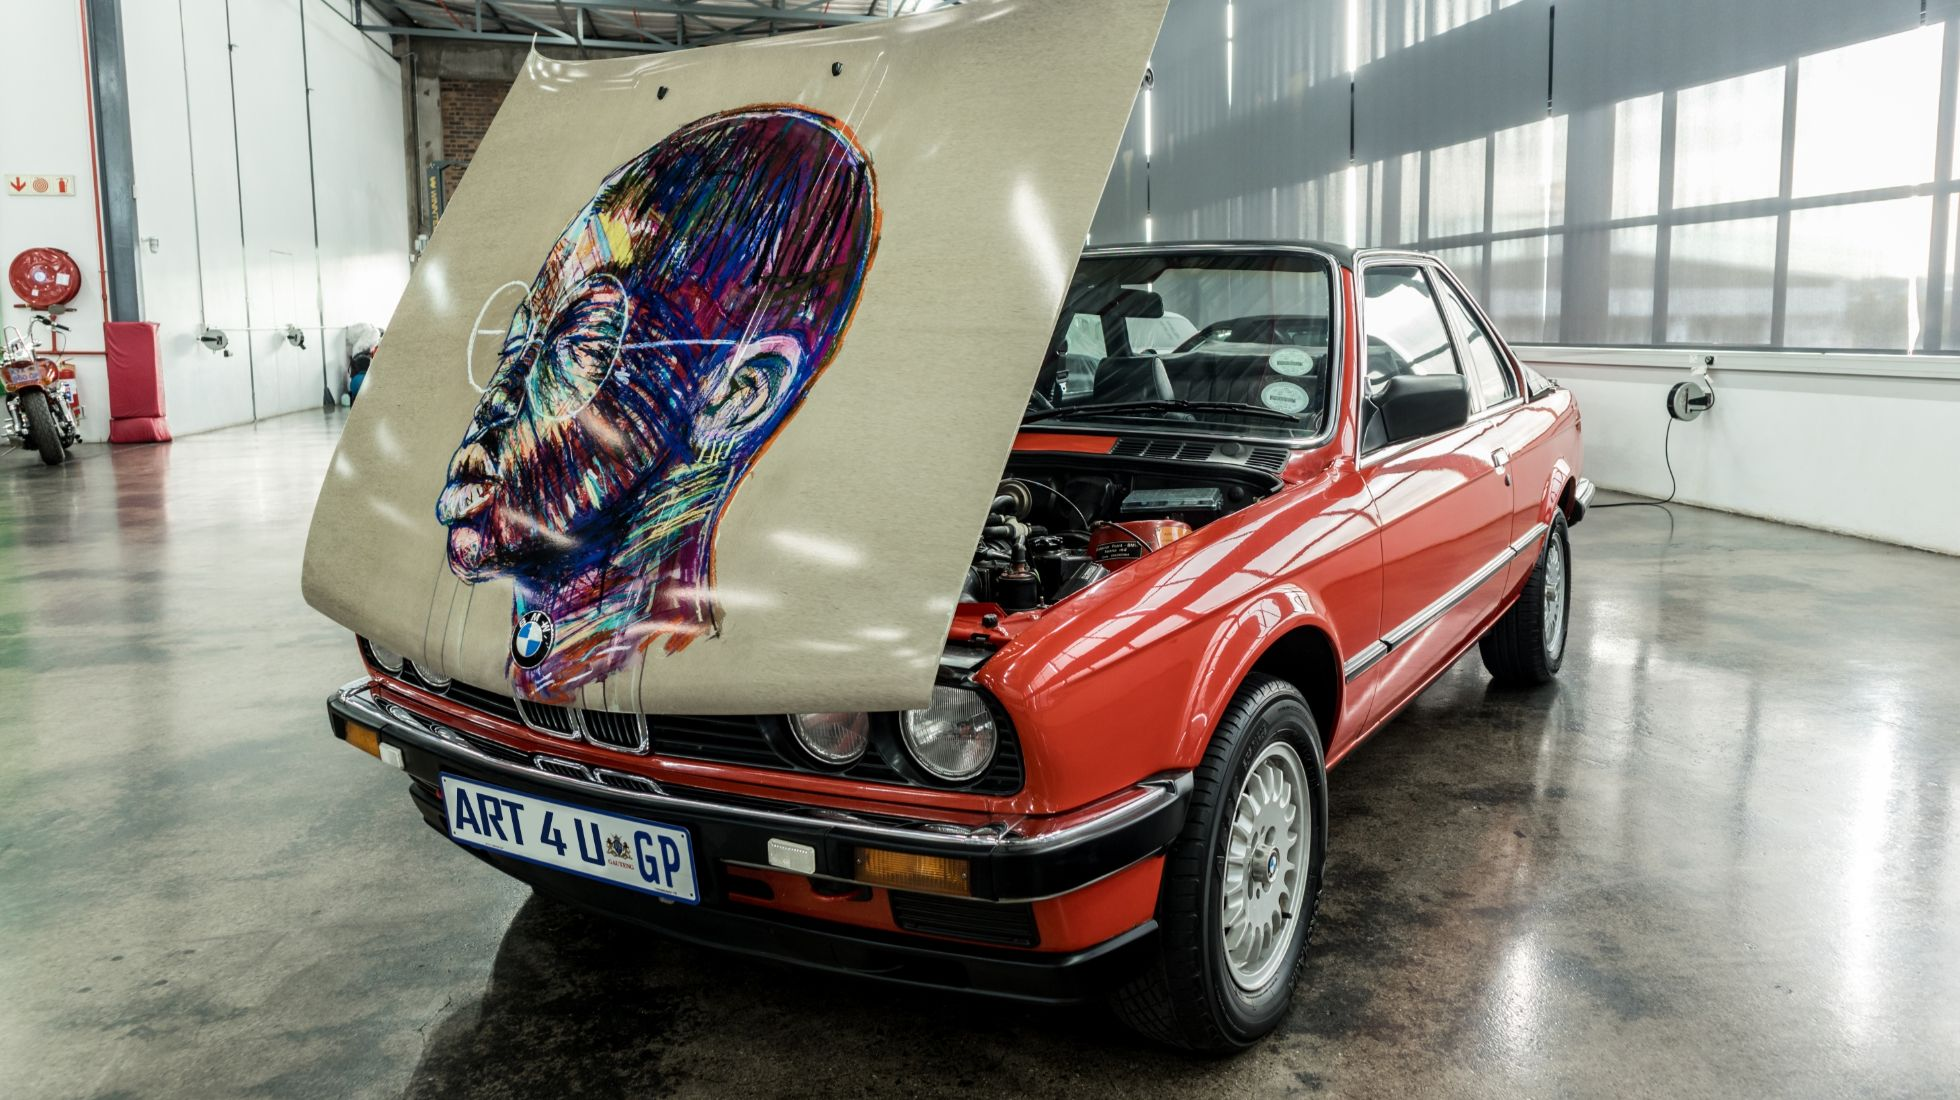 A tale of a unique BMW Art Car in Mzansi